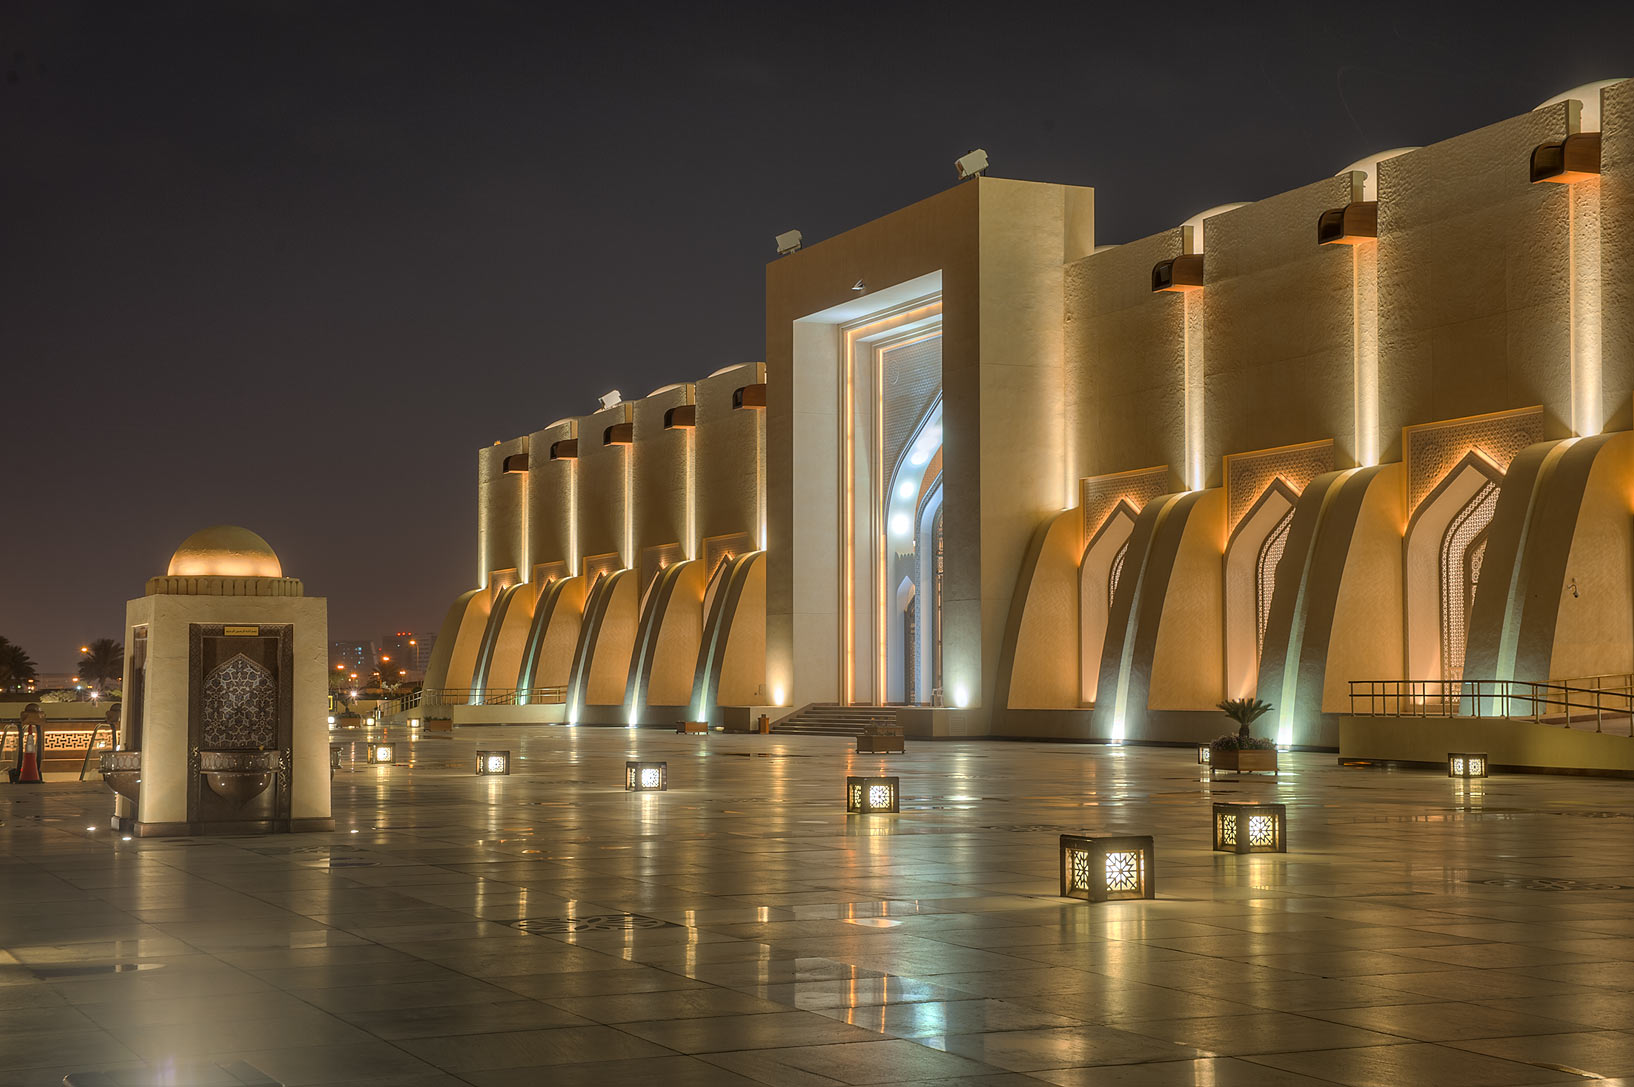 Woman's entrance of State Mosque (Sheikh Muhammad Ibn Abdul Wahhab Mosque). Doha, Qatar